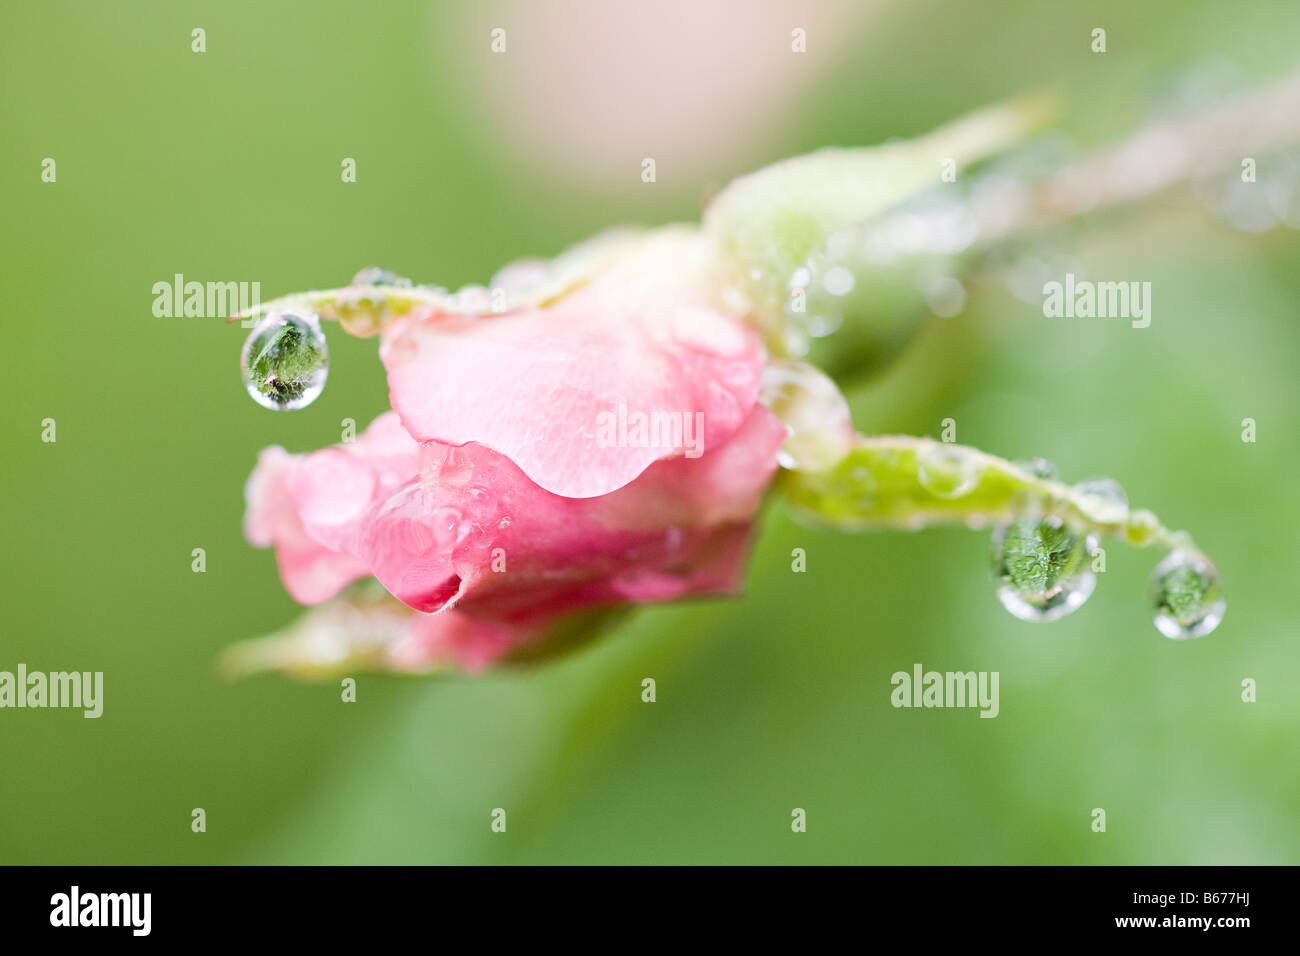 Dew on a flower - Stock Image